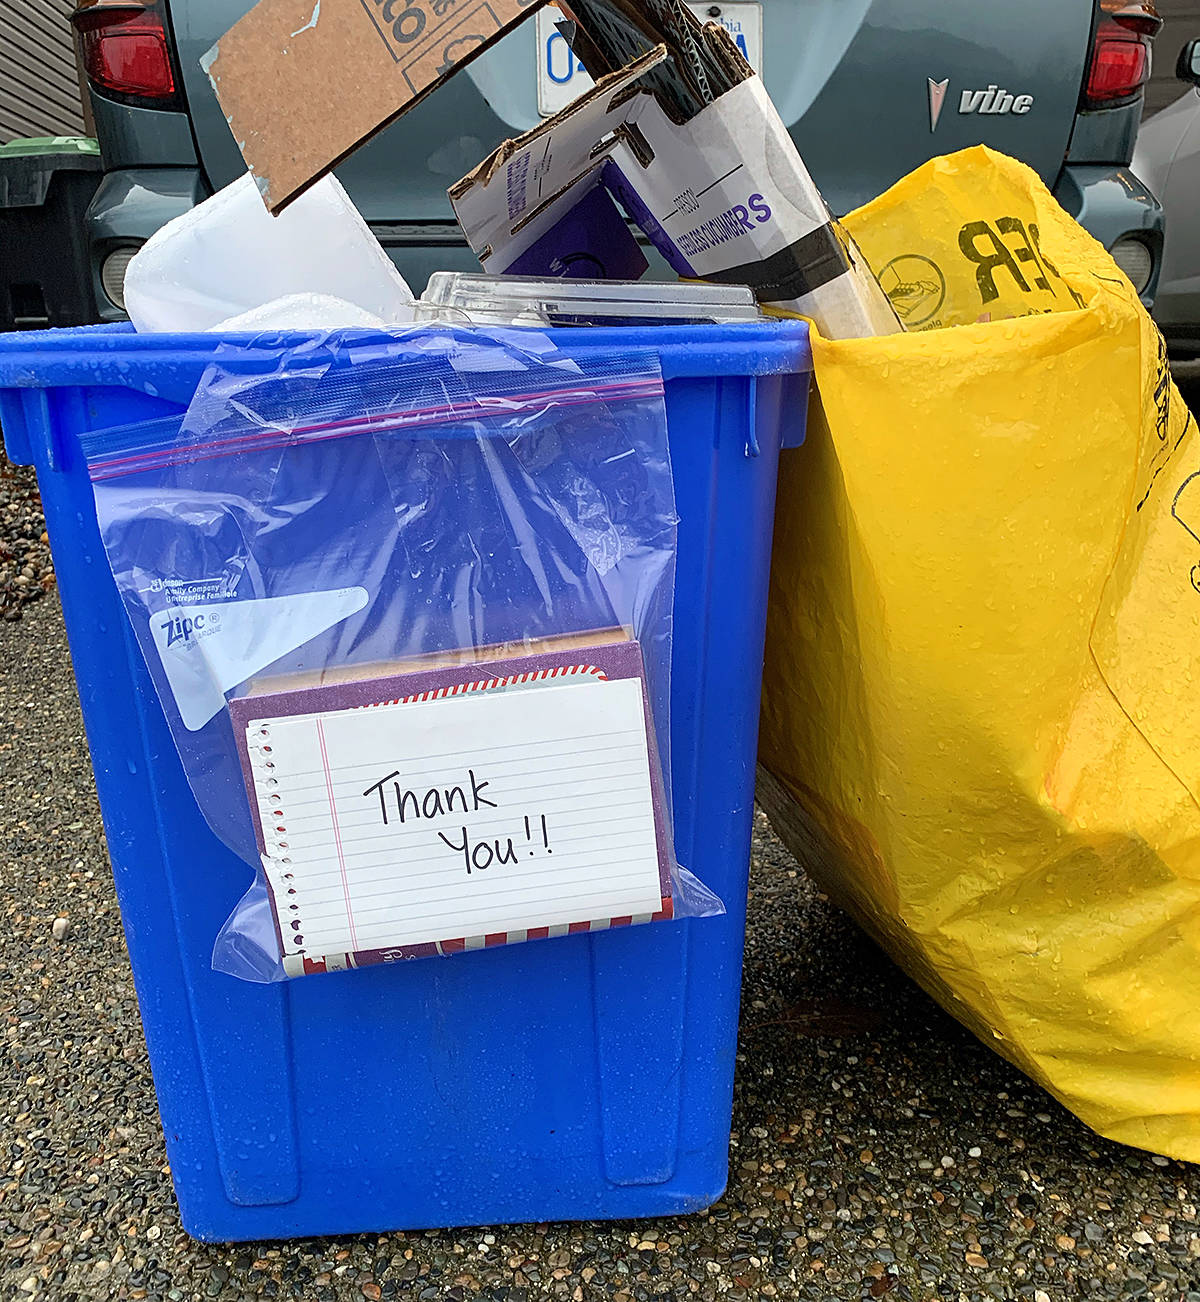 Tokens of thanks, including boxes of chocolates, were taped to bins that were put out to the curb. Enclosed was a thank you note to the waste collection teams for their efforts. It was part of the Moe Moe Effect. (Special to Langley Advance Times)